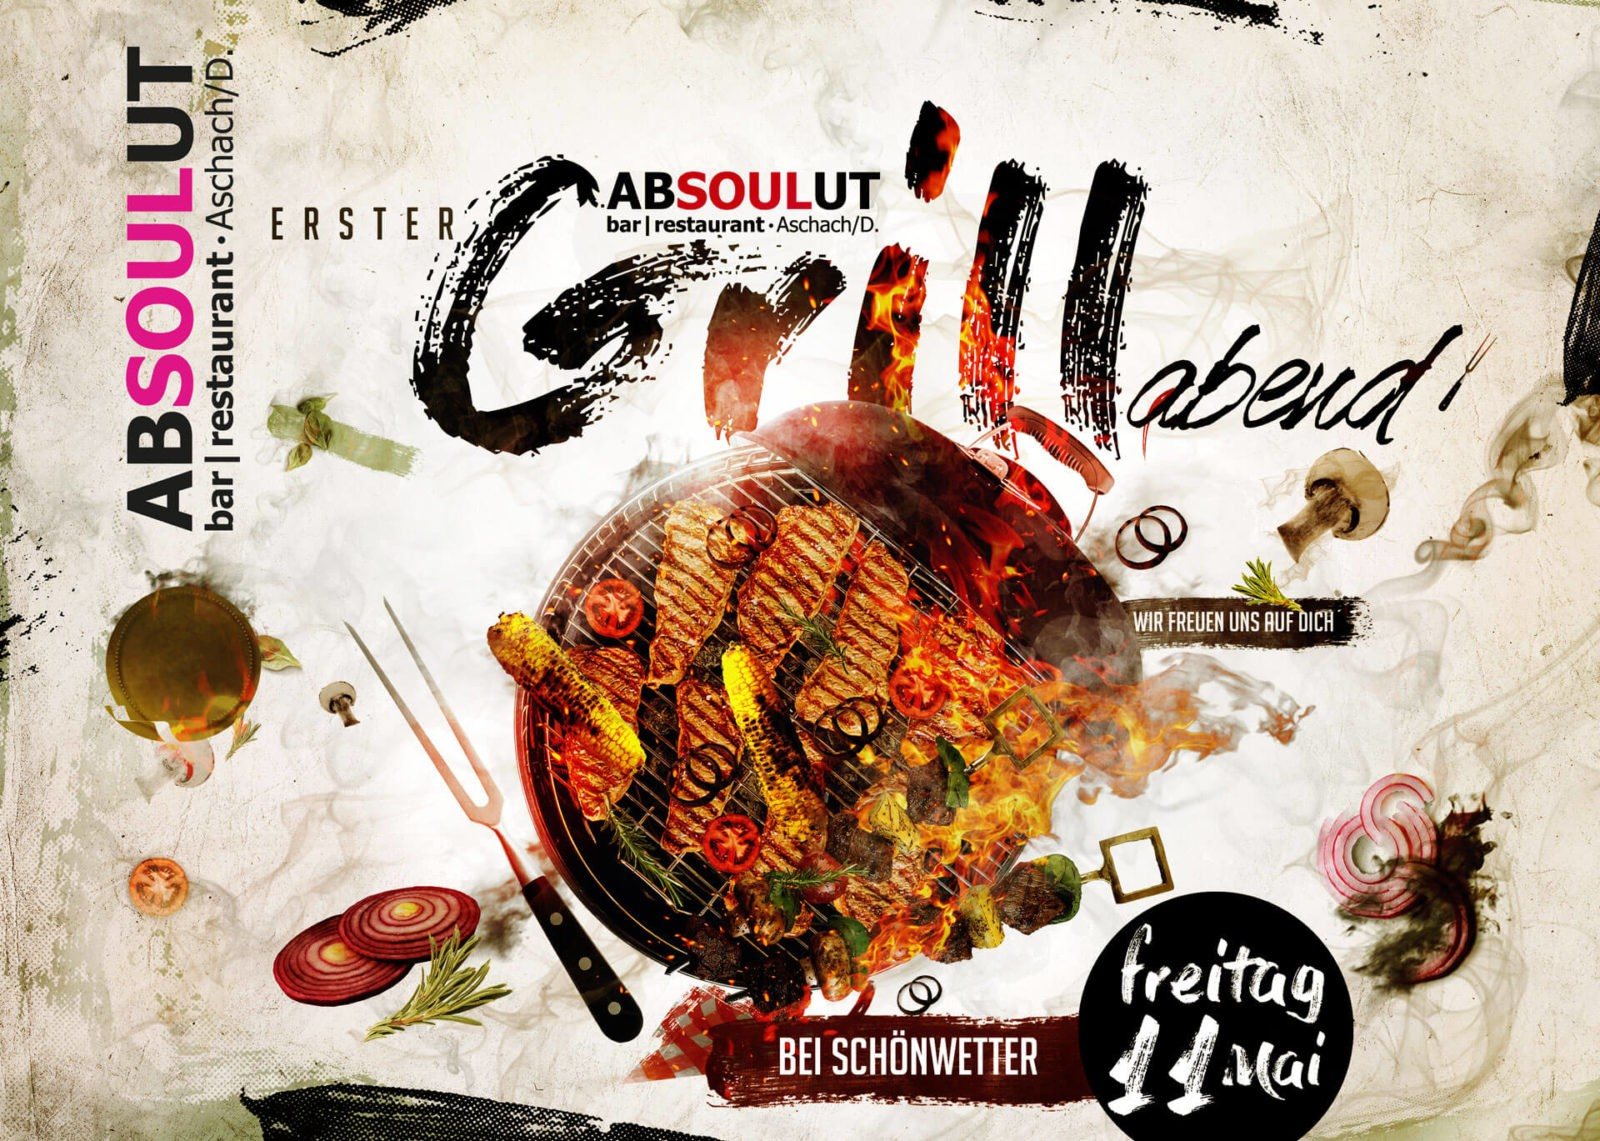 Absolut Bar Restaurant Events - Grillabend